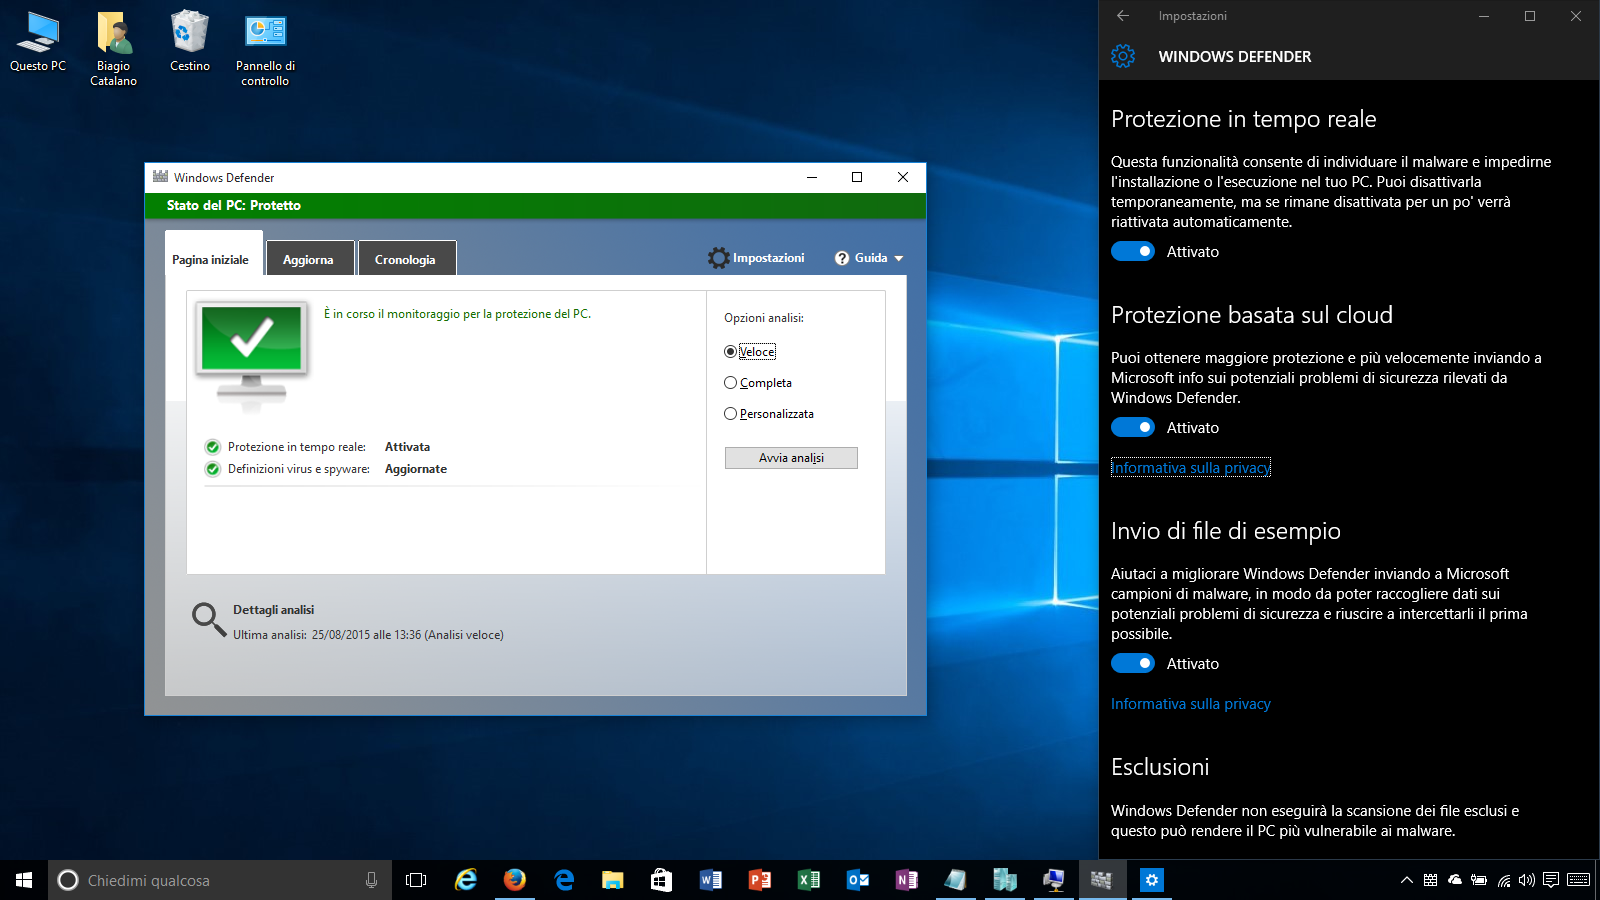 Windows 10 non necessita di antivirus, basta Windows